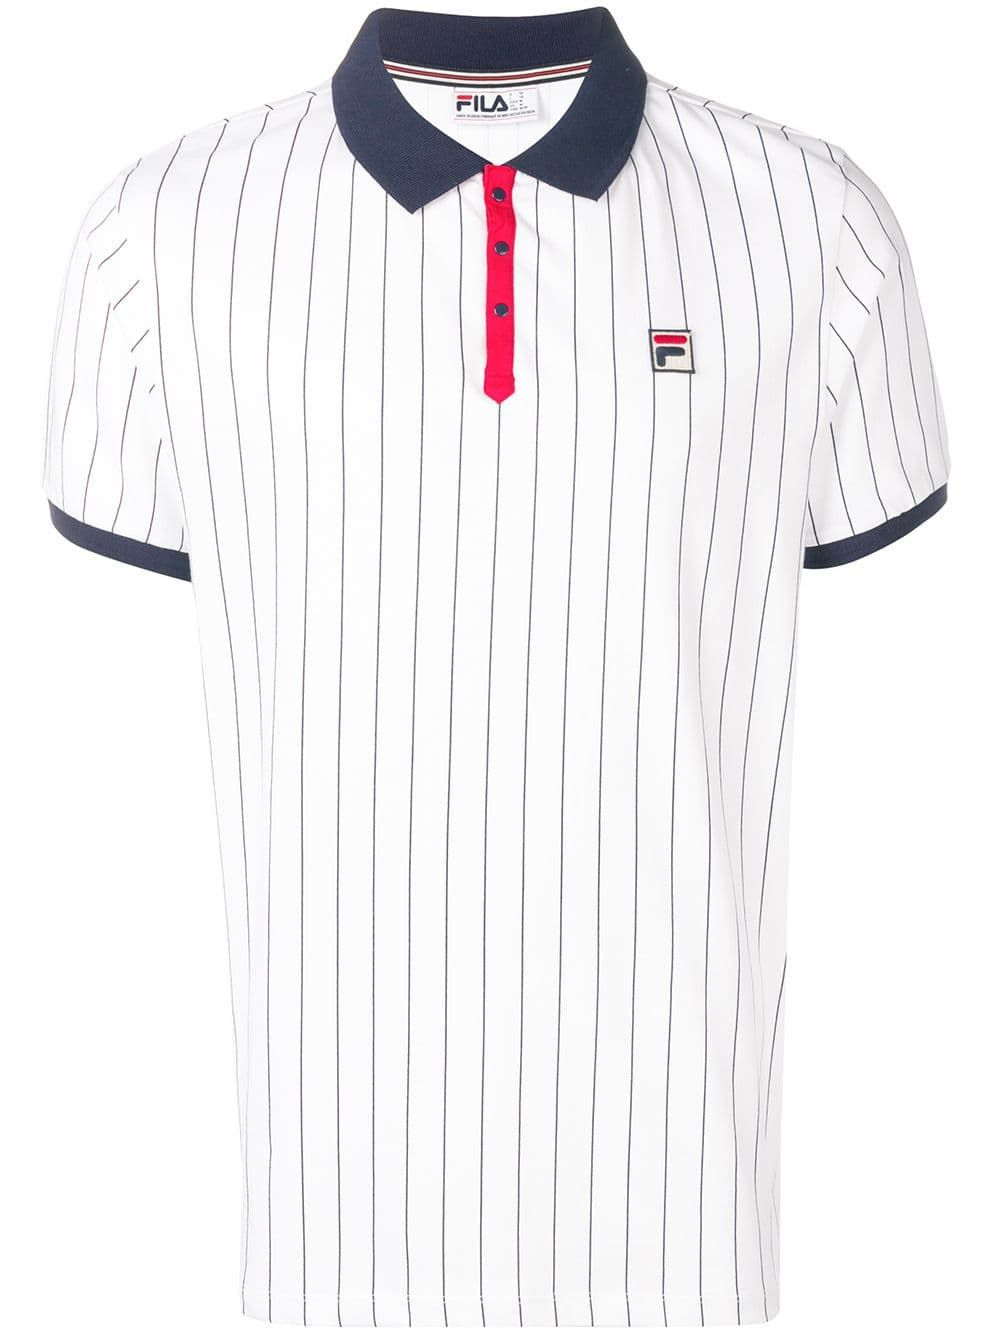 b6e3c674c5 FILA FILA BB1 STRIPED POLO SHIRT - WHITE. #fila #cloth | Fila in ...